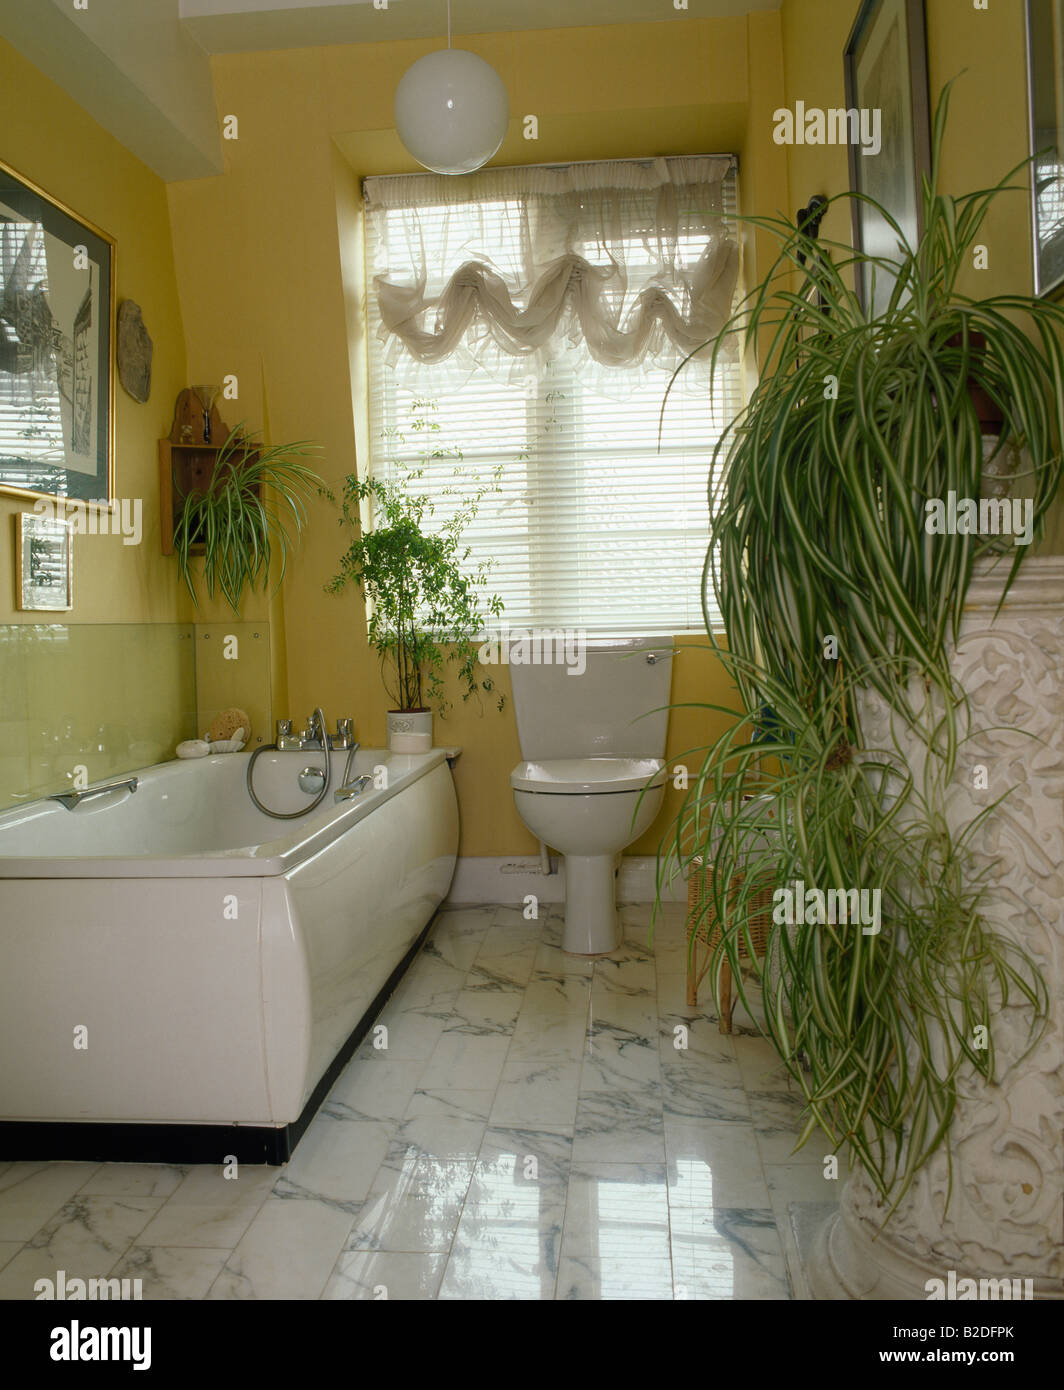 Spider plants in yellow bathroom with white plastic bath and marble